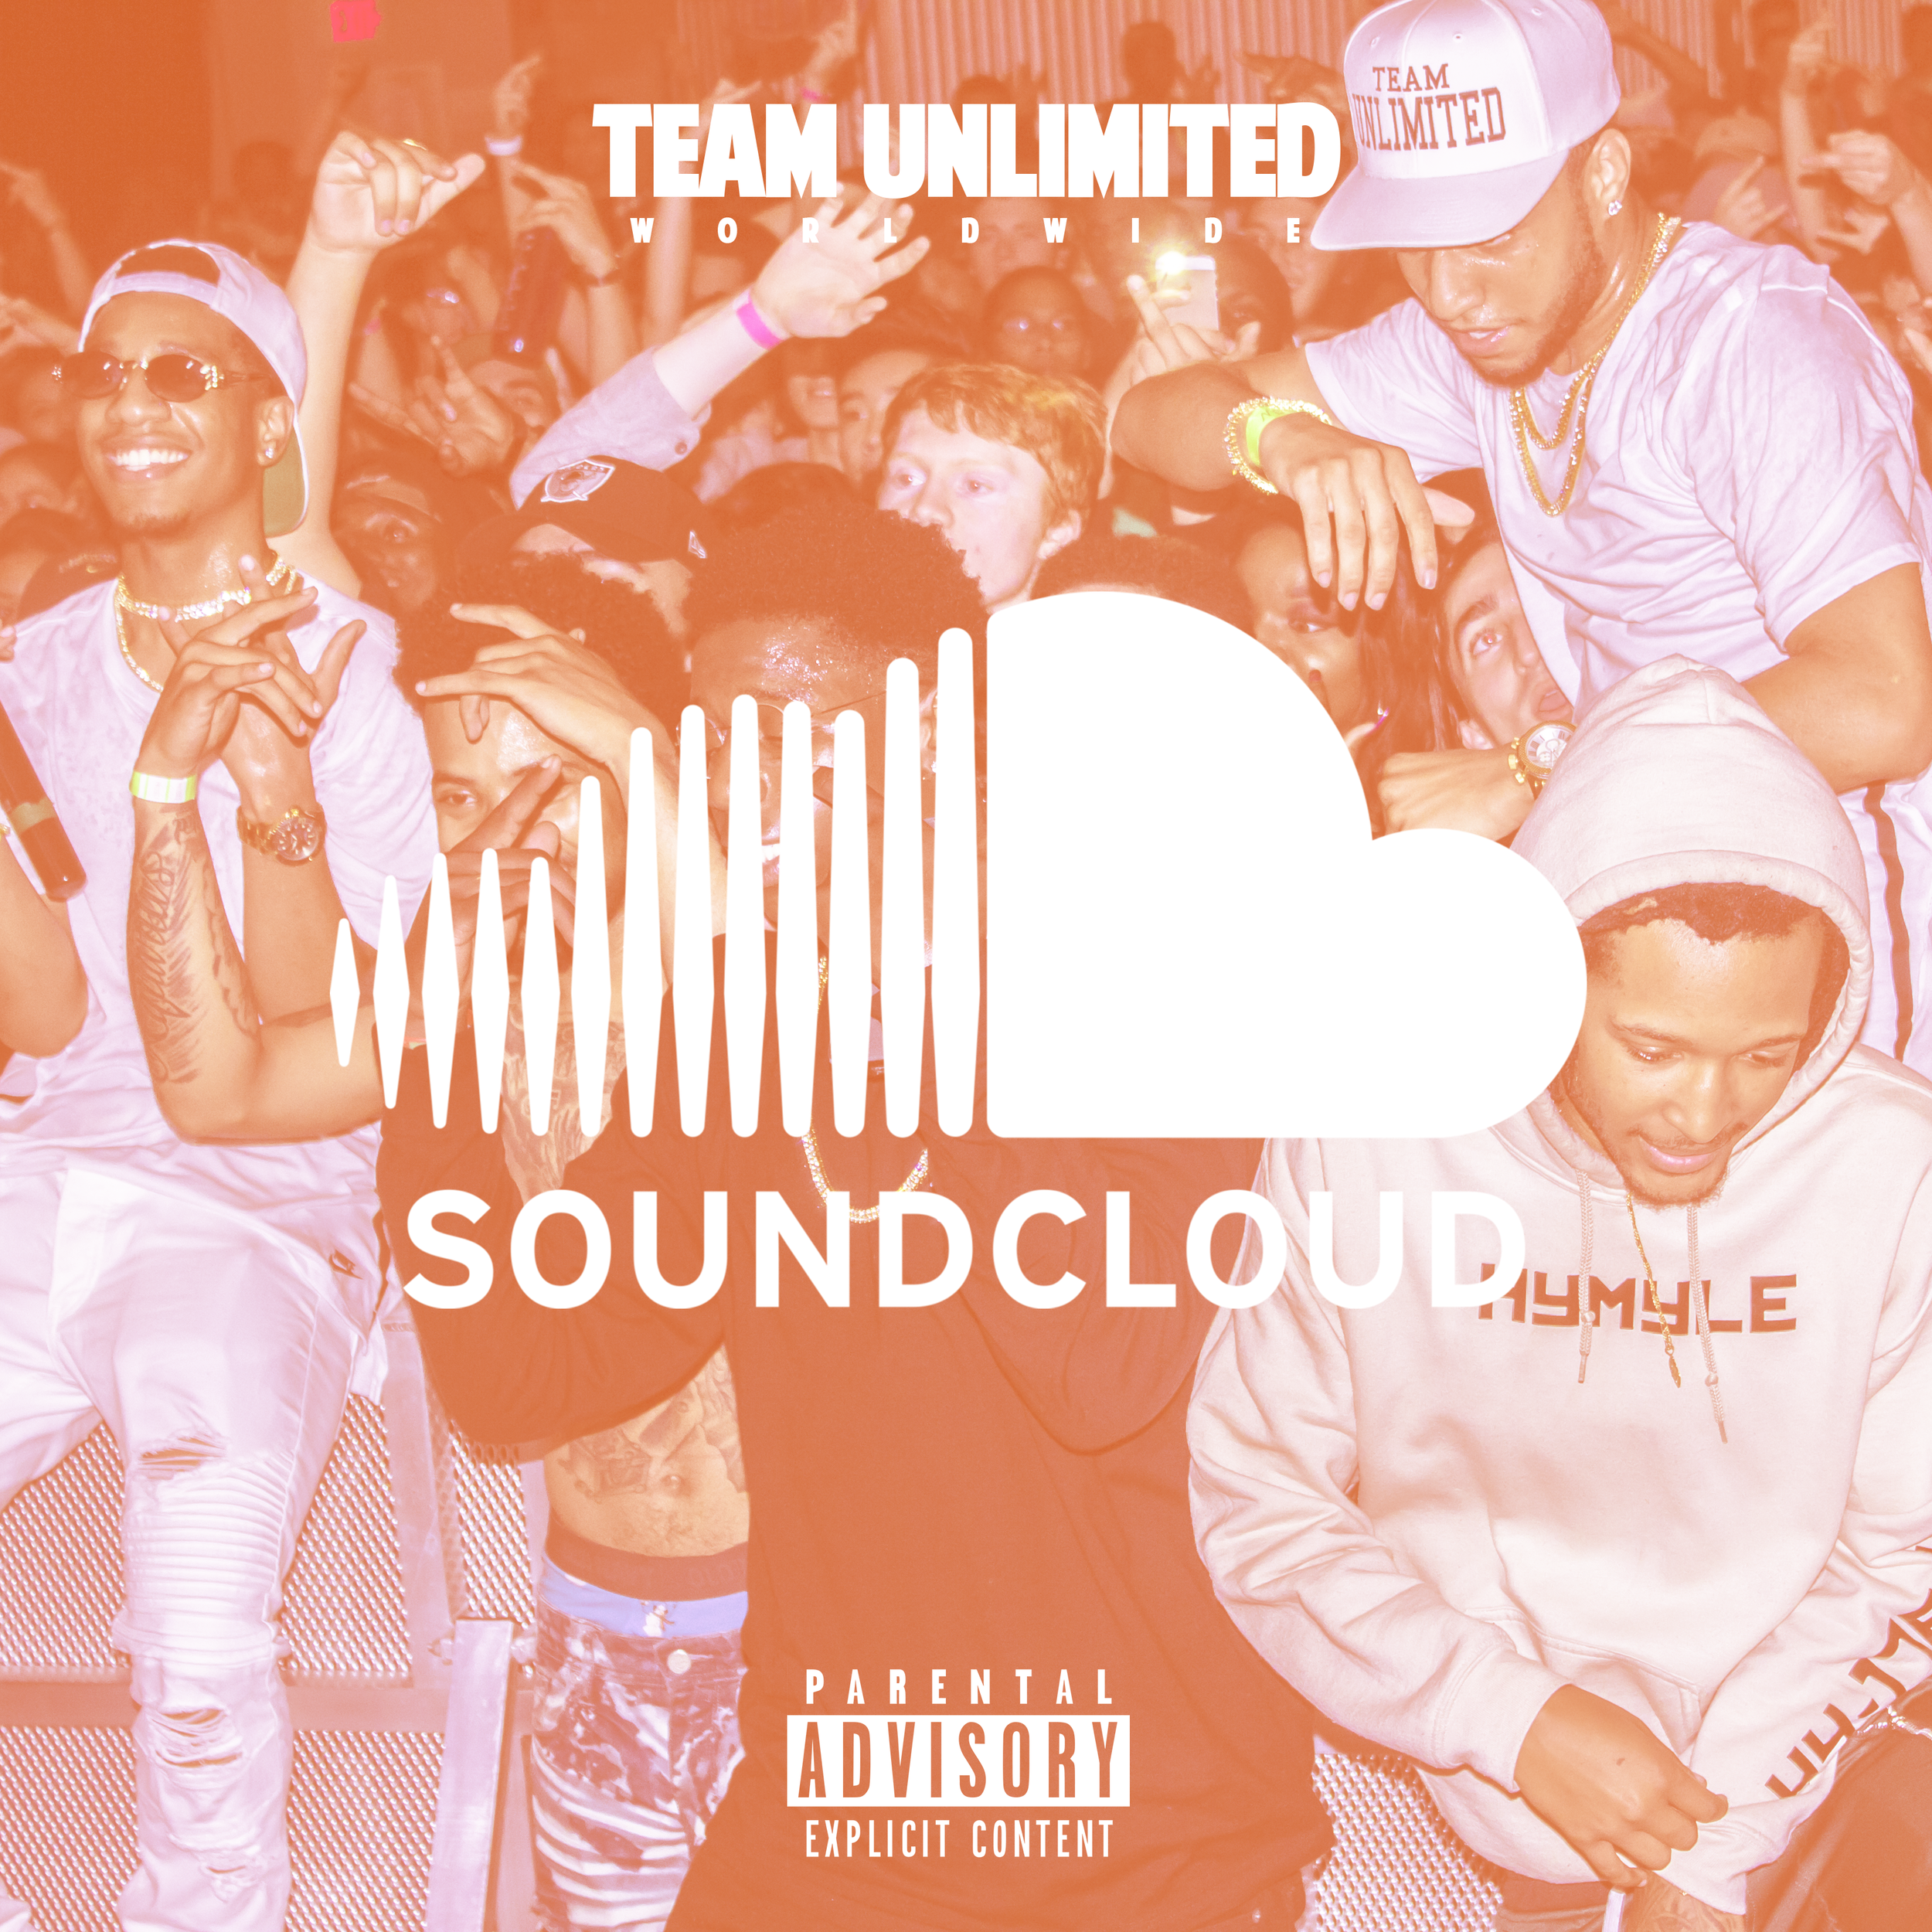 FEATURES FROM TEAM UNLIMITED - CURATED BY TEAM UNLIMITED